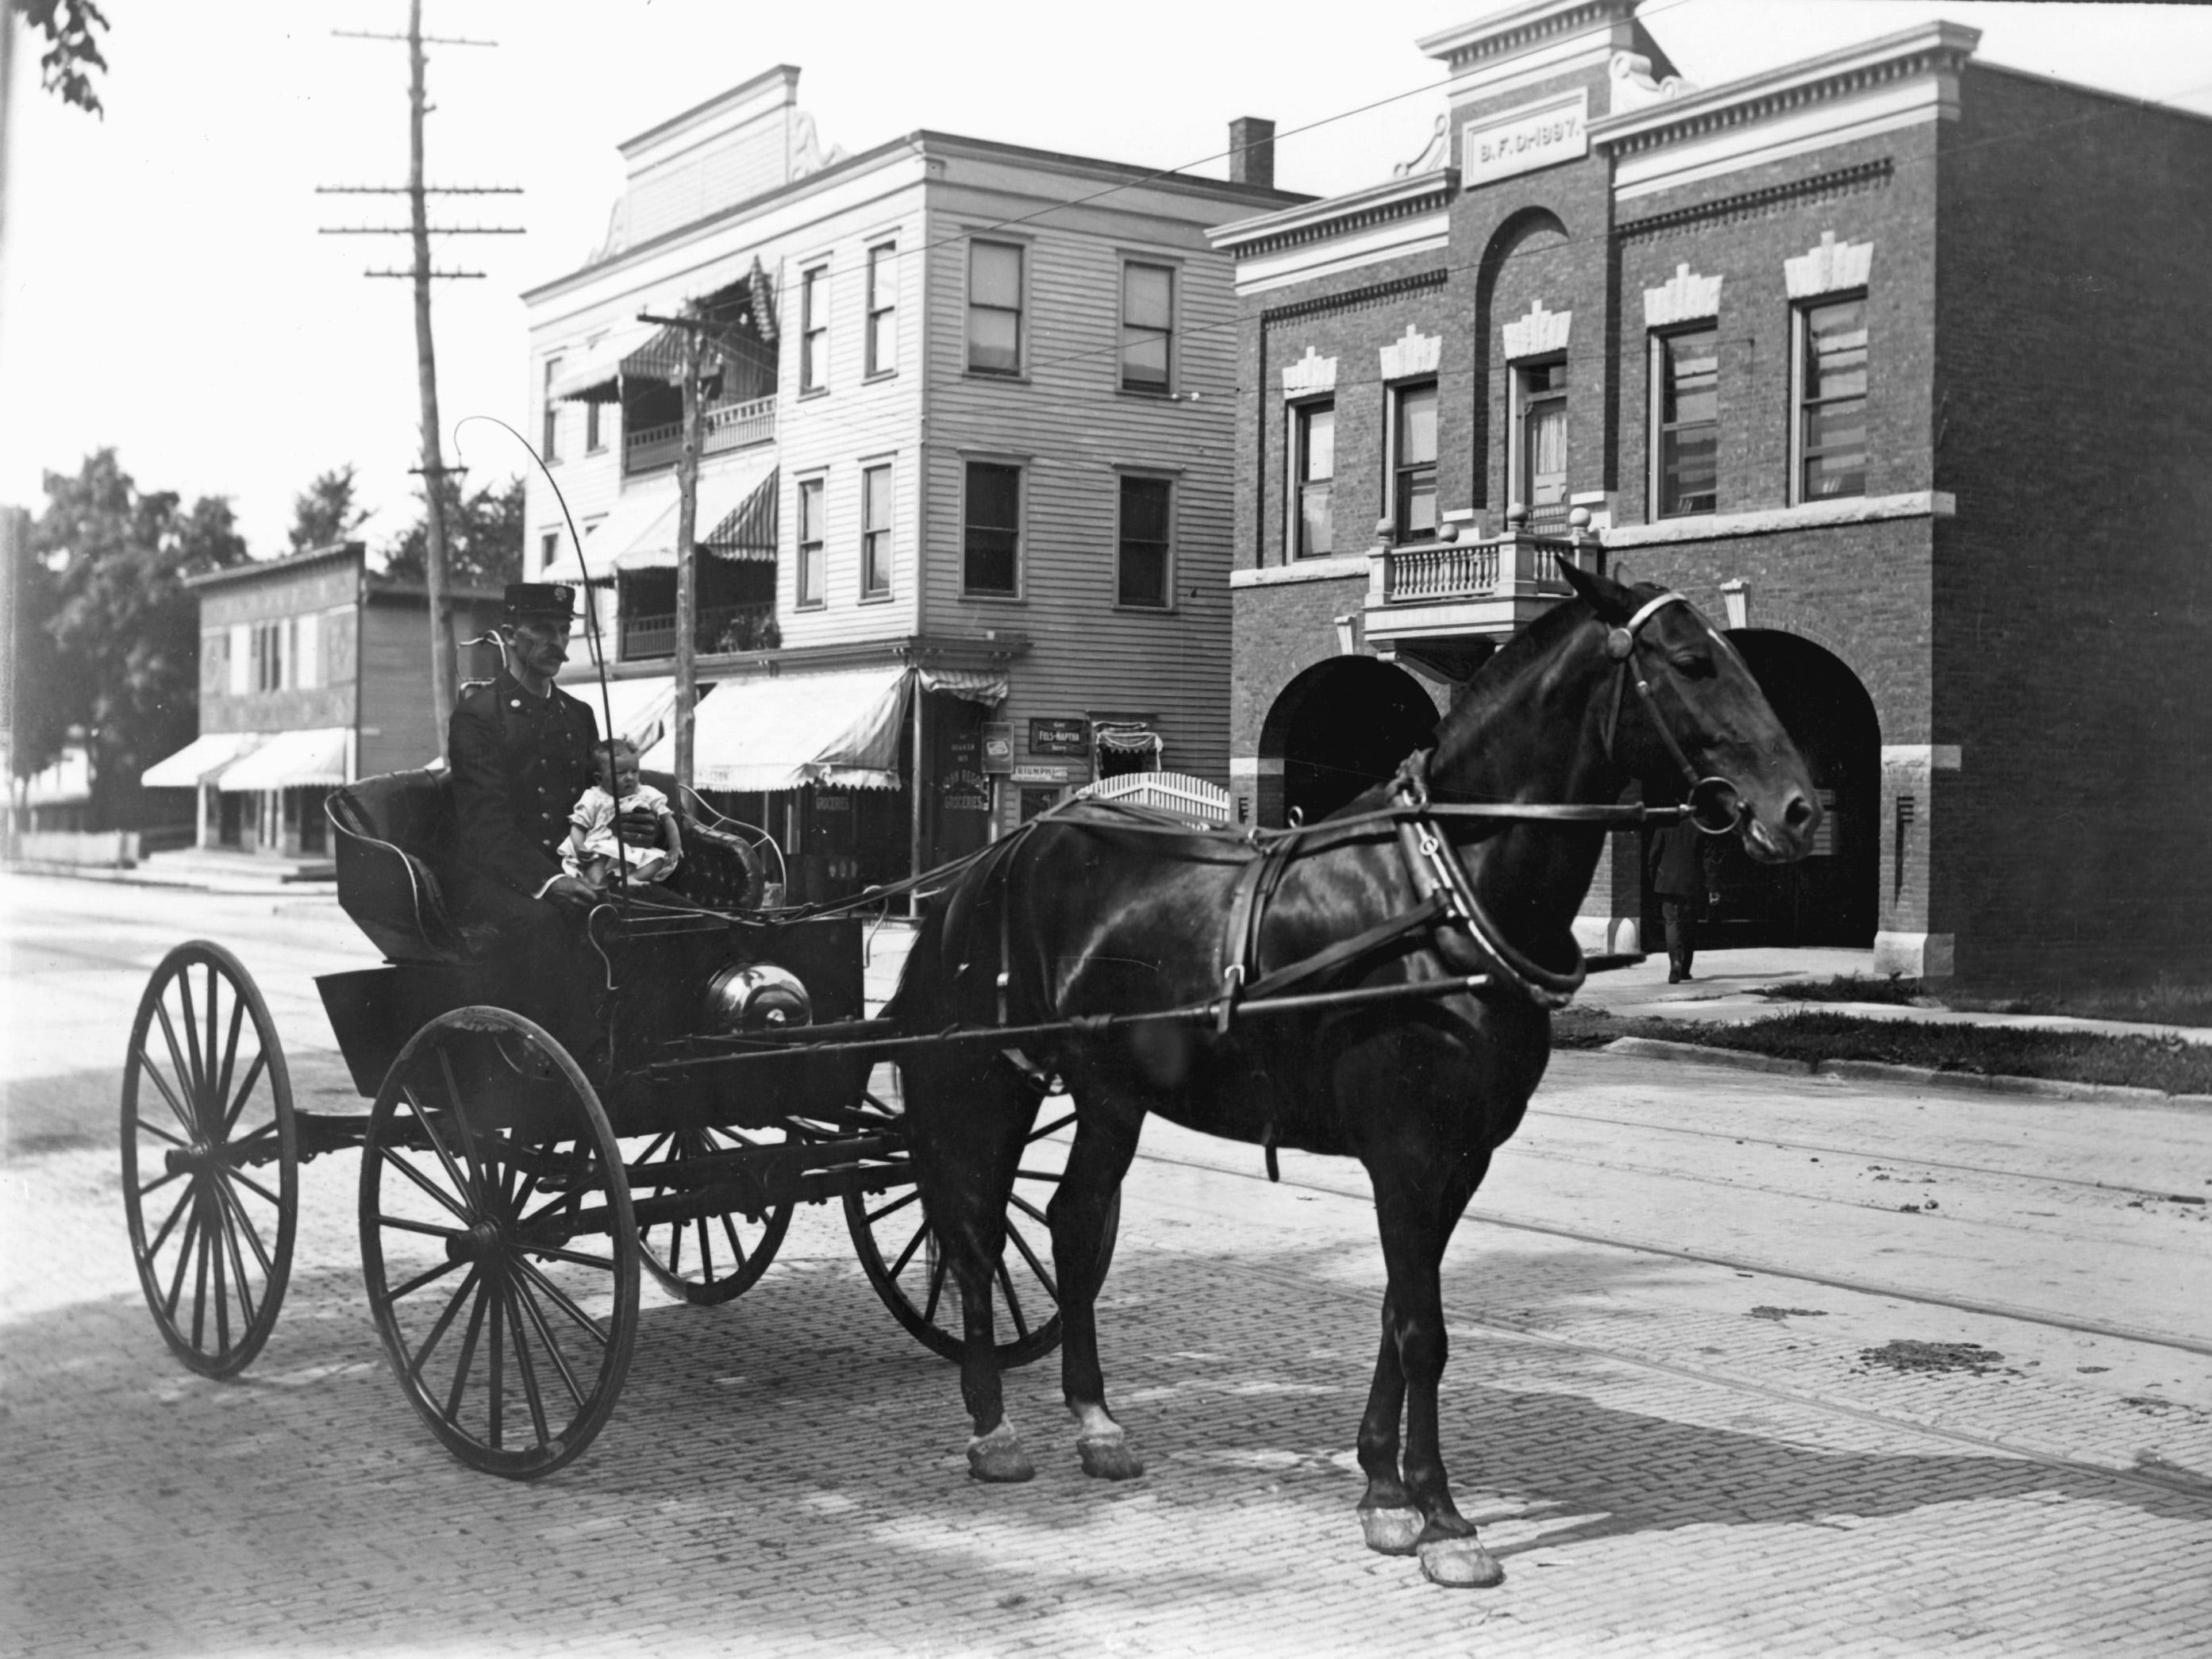 A young rider takes in the scenery in a horse and buggy as it travels along DeRussey Street on the south side of Binghamton around 1900. While the name of the street would become South Washington Street in 1941, the Binghamton Fire Department Station No. 5 is in the background. While the street changed names, the station looks much the same today as the Number 5 Restaurant.